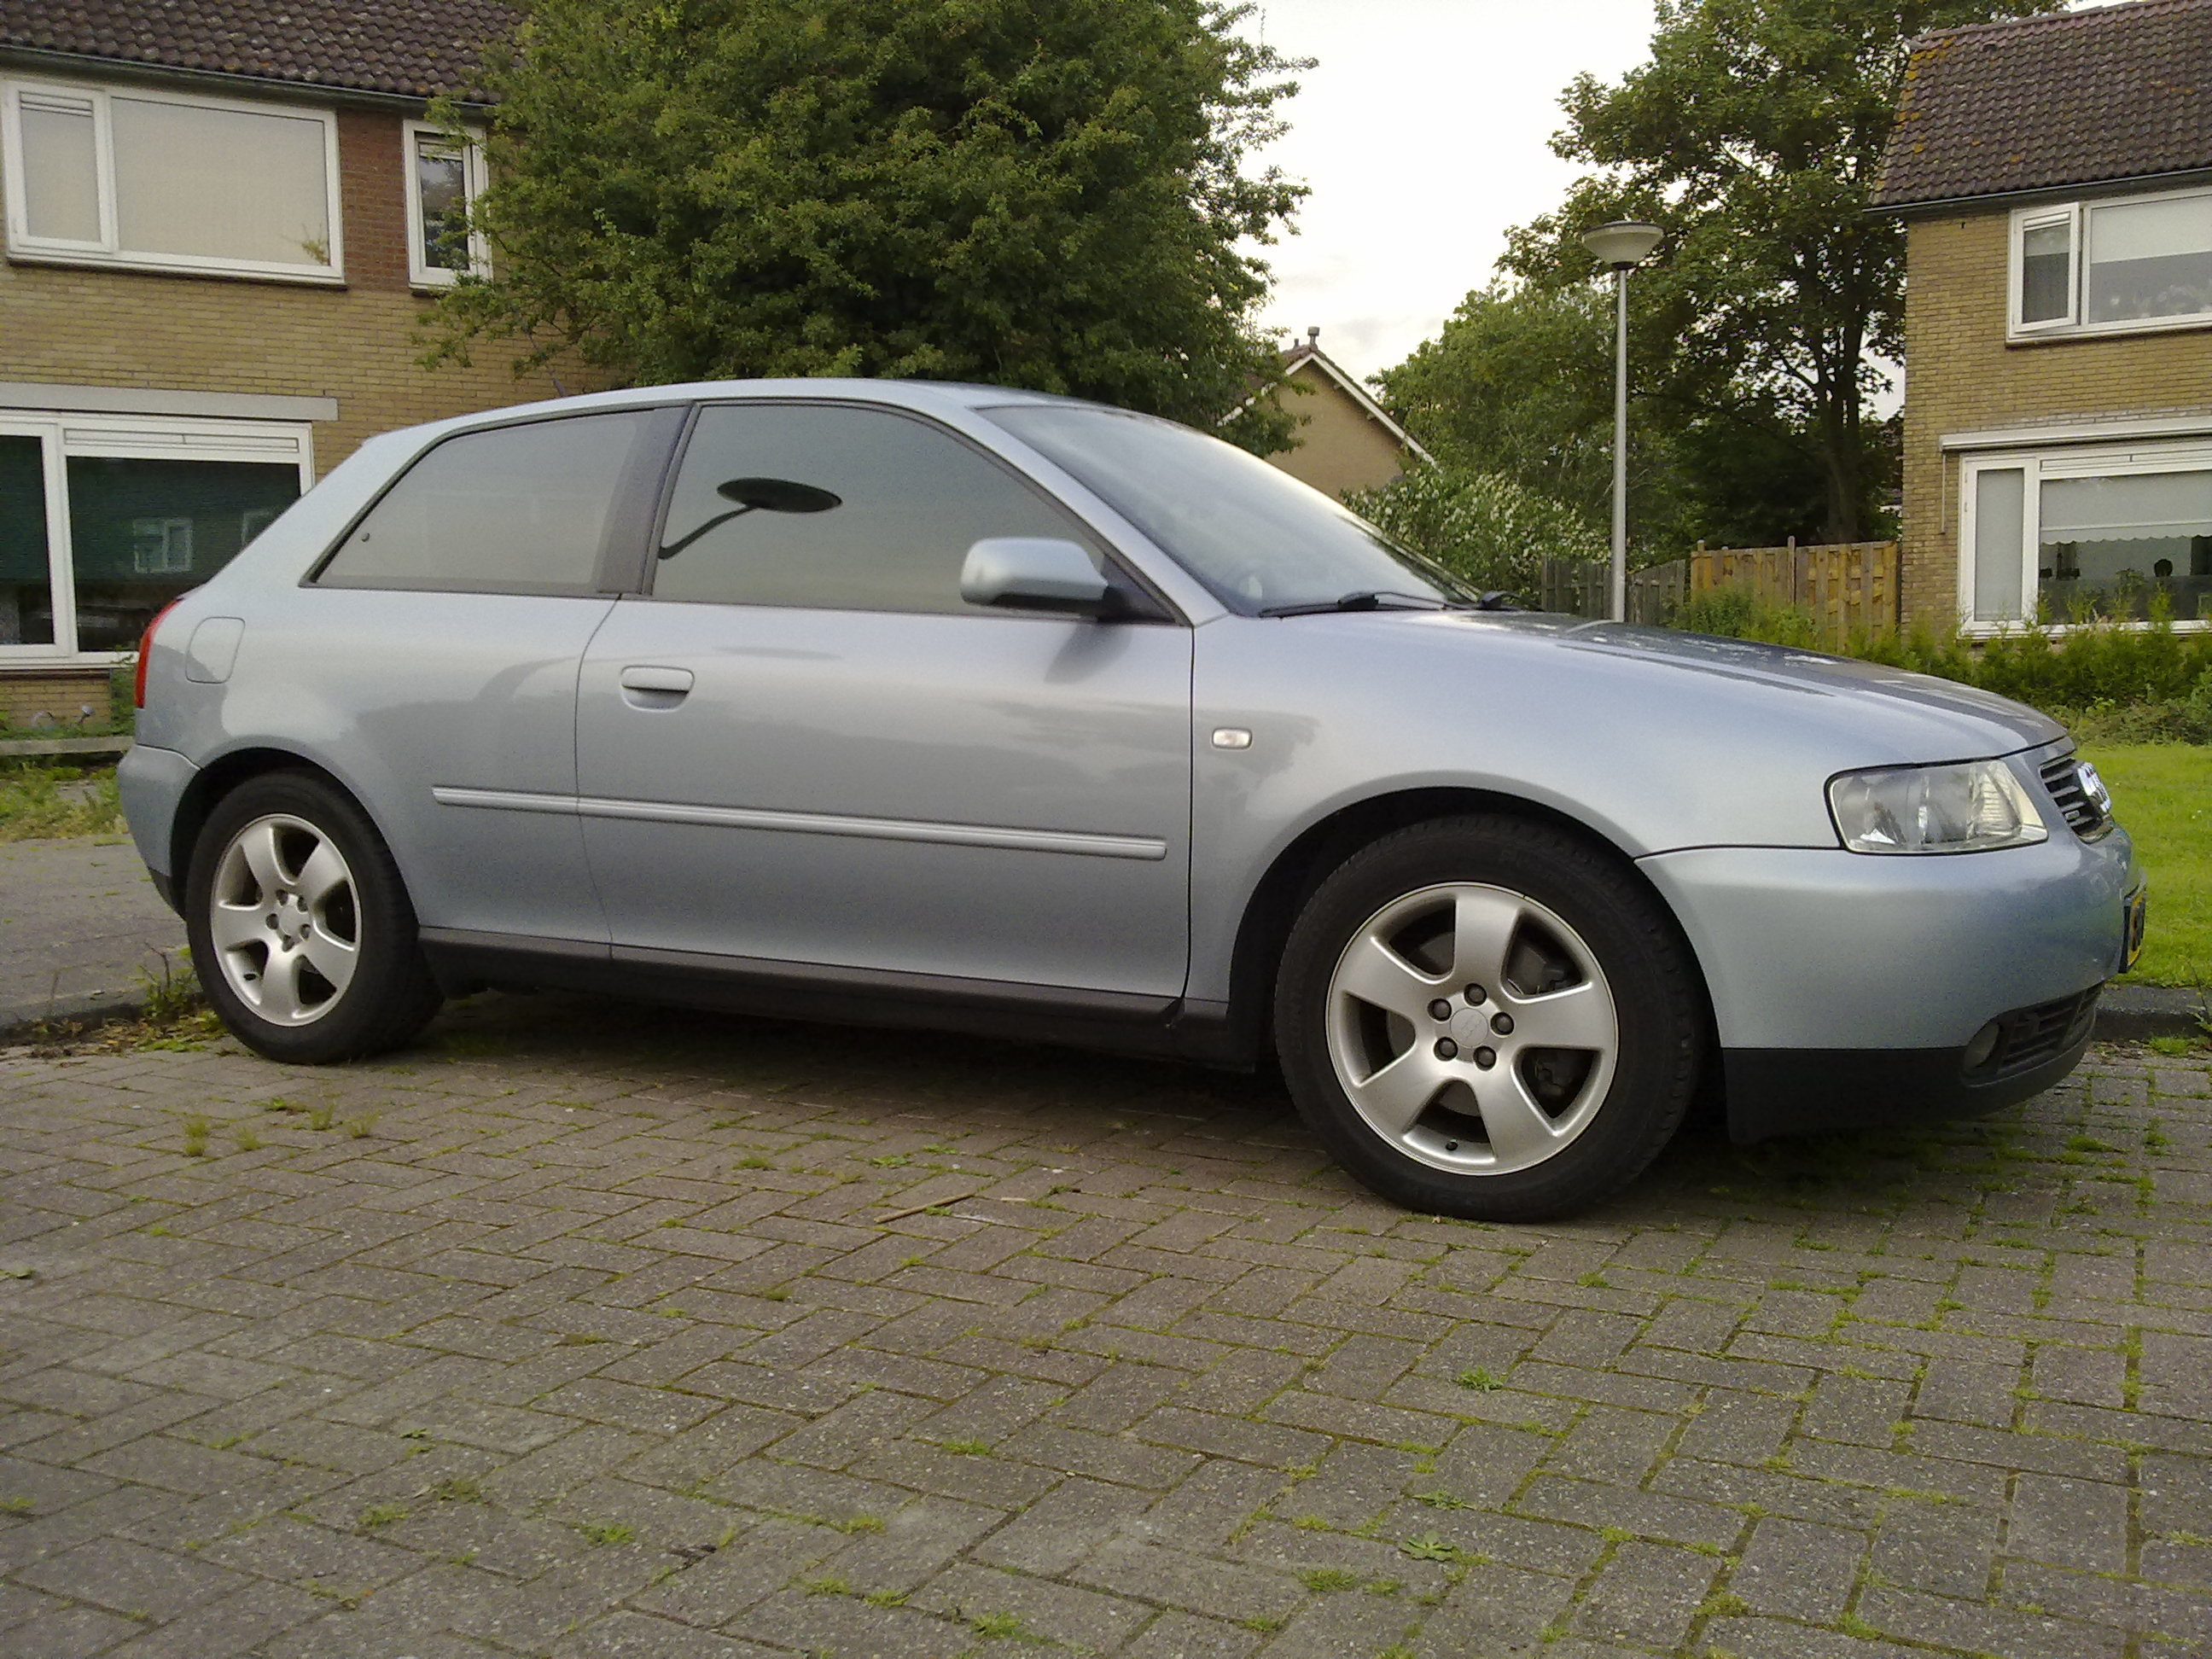 Audi A3 Exterior Mods >> Swiftspecial 2000 Audi A3 Specs, Photos, Modification Info at CarDomain